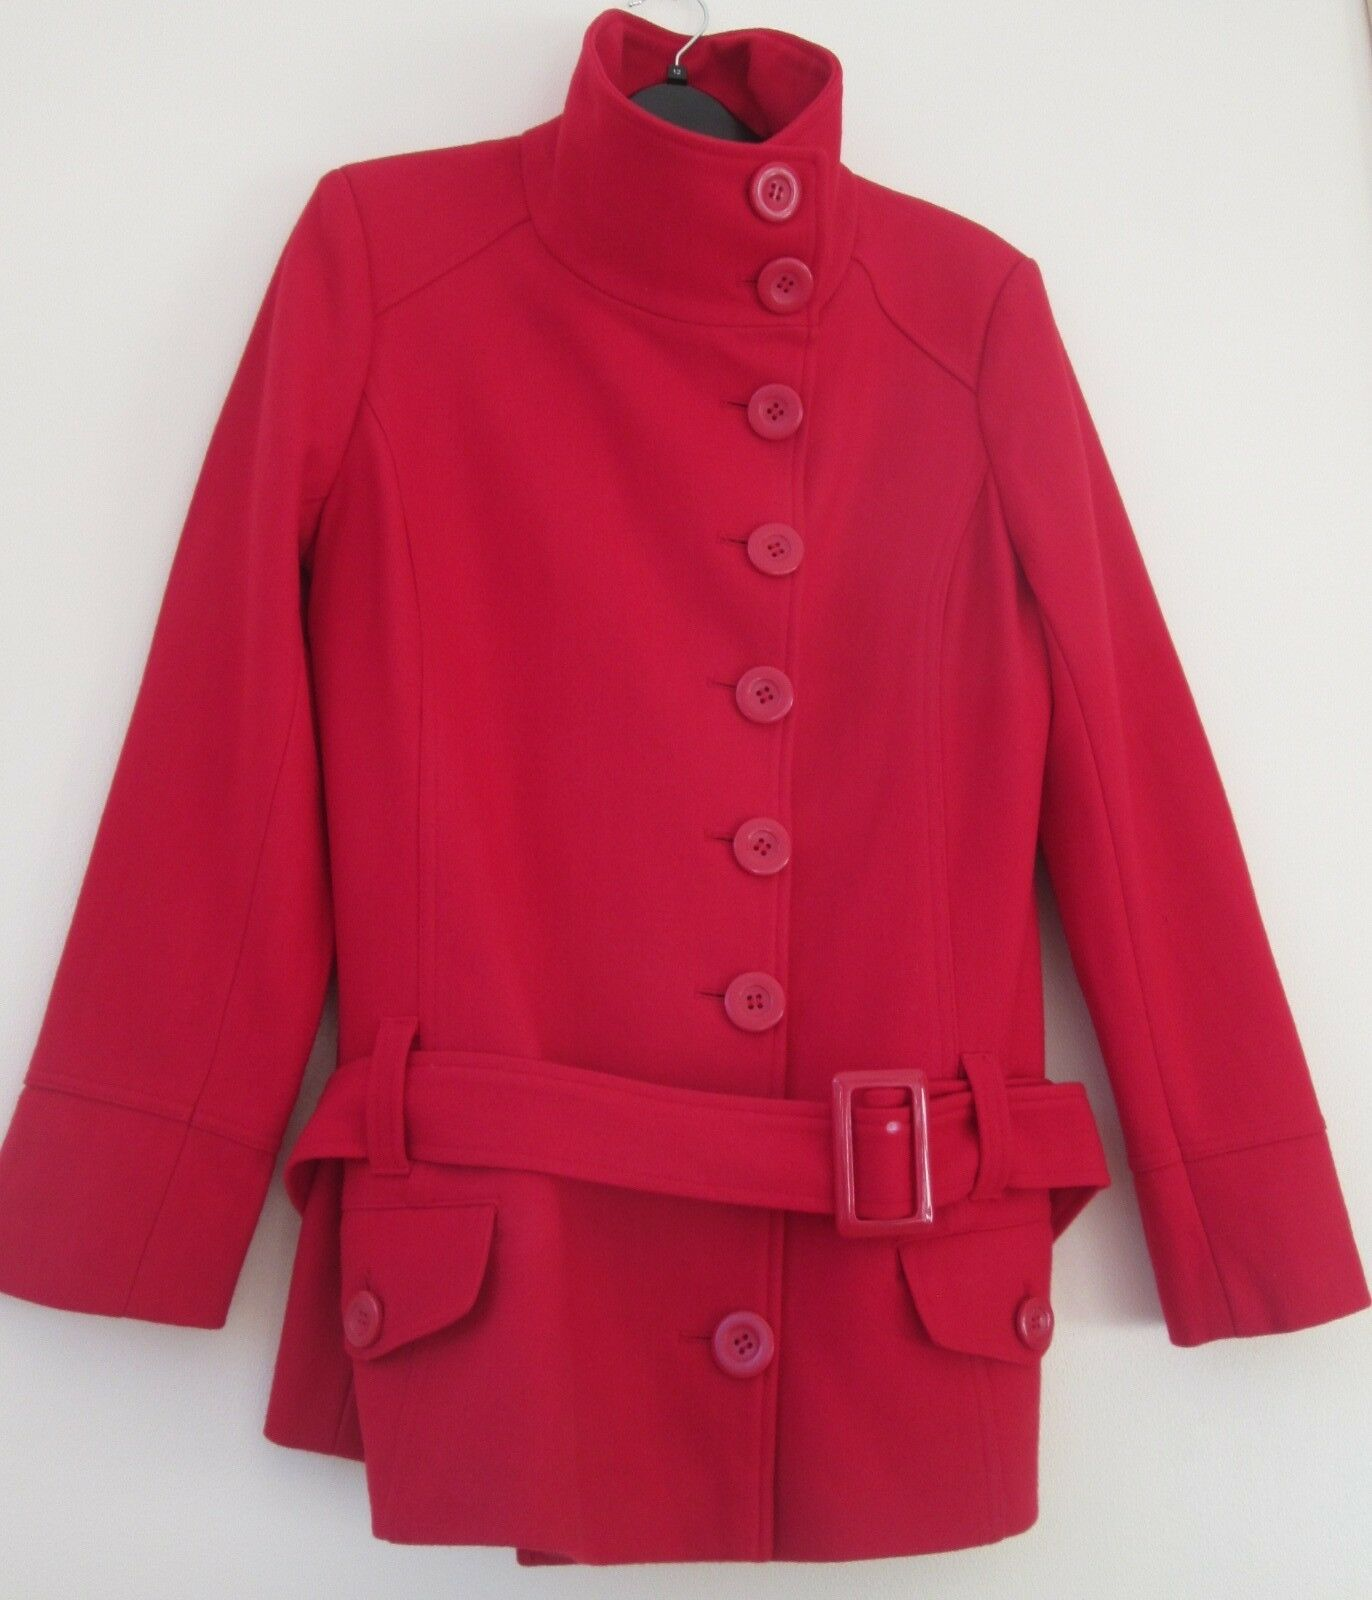 New Look Red Wool Rich Coat Single Breasted Size 14 in Excellent Condition